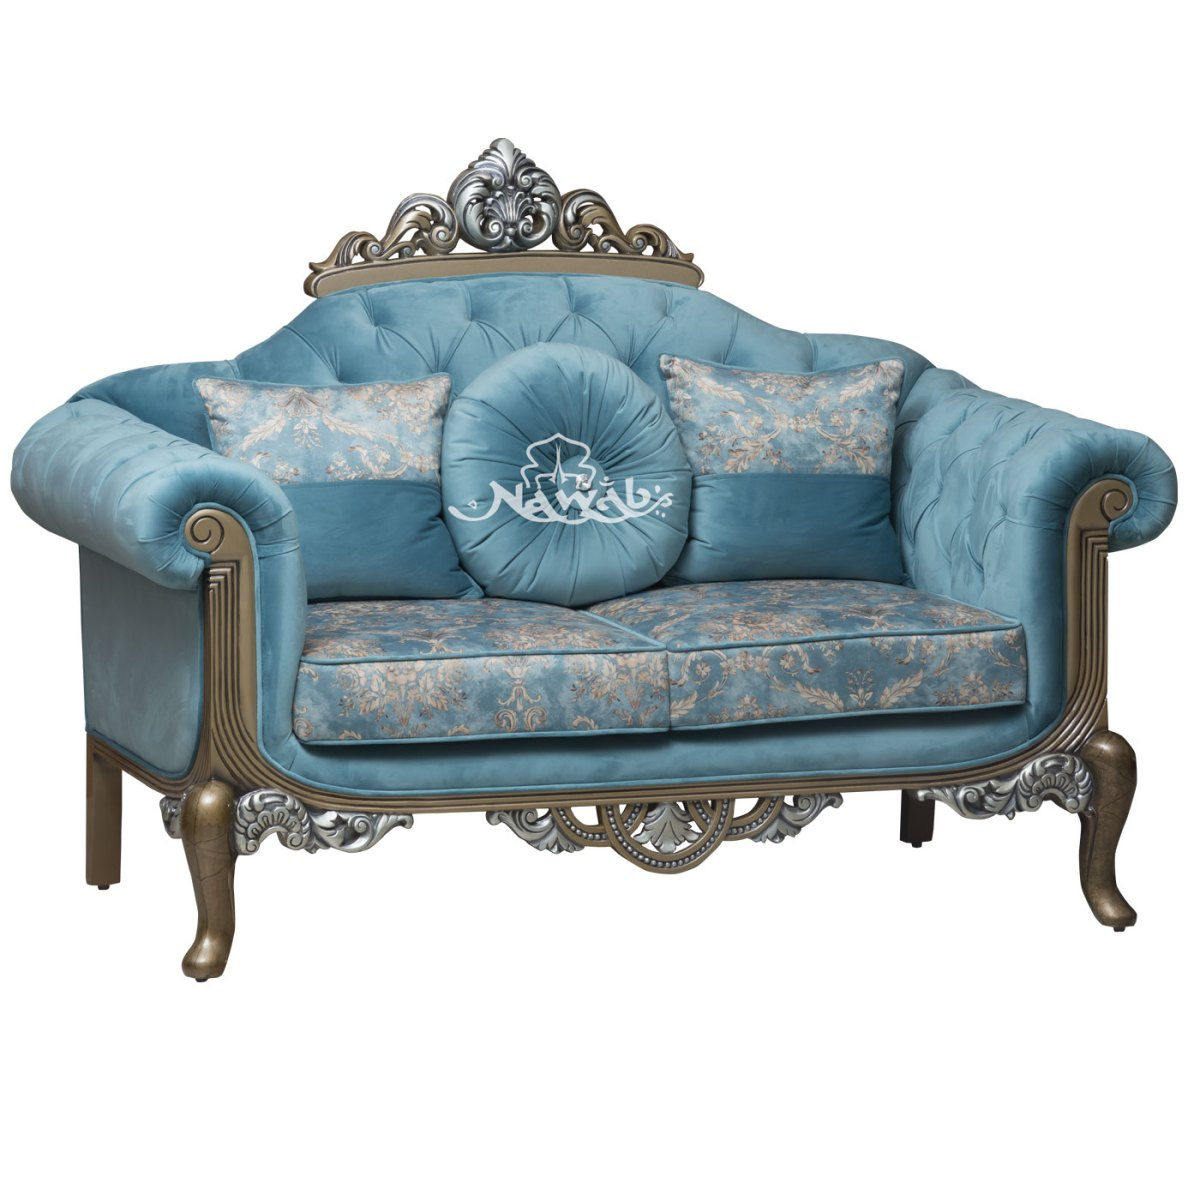 2-Seater-Teak-wood-hand-carved-metallic-golden-and-silver-polish-customized-quilting-suede-fabric